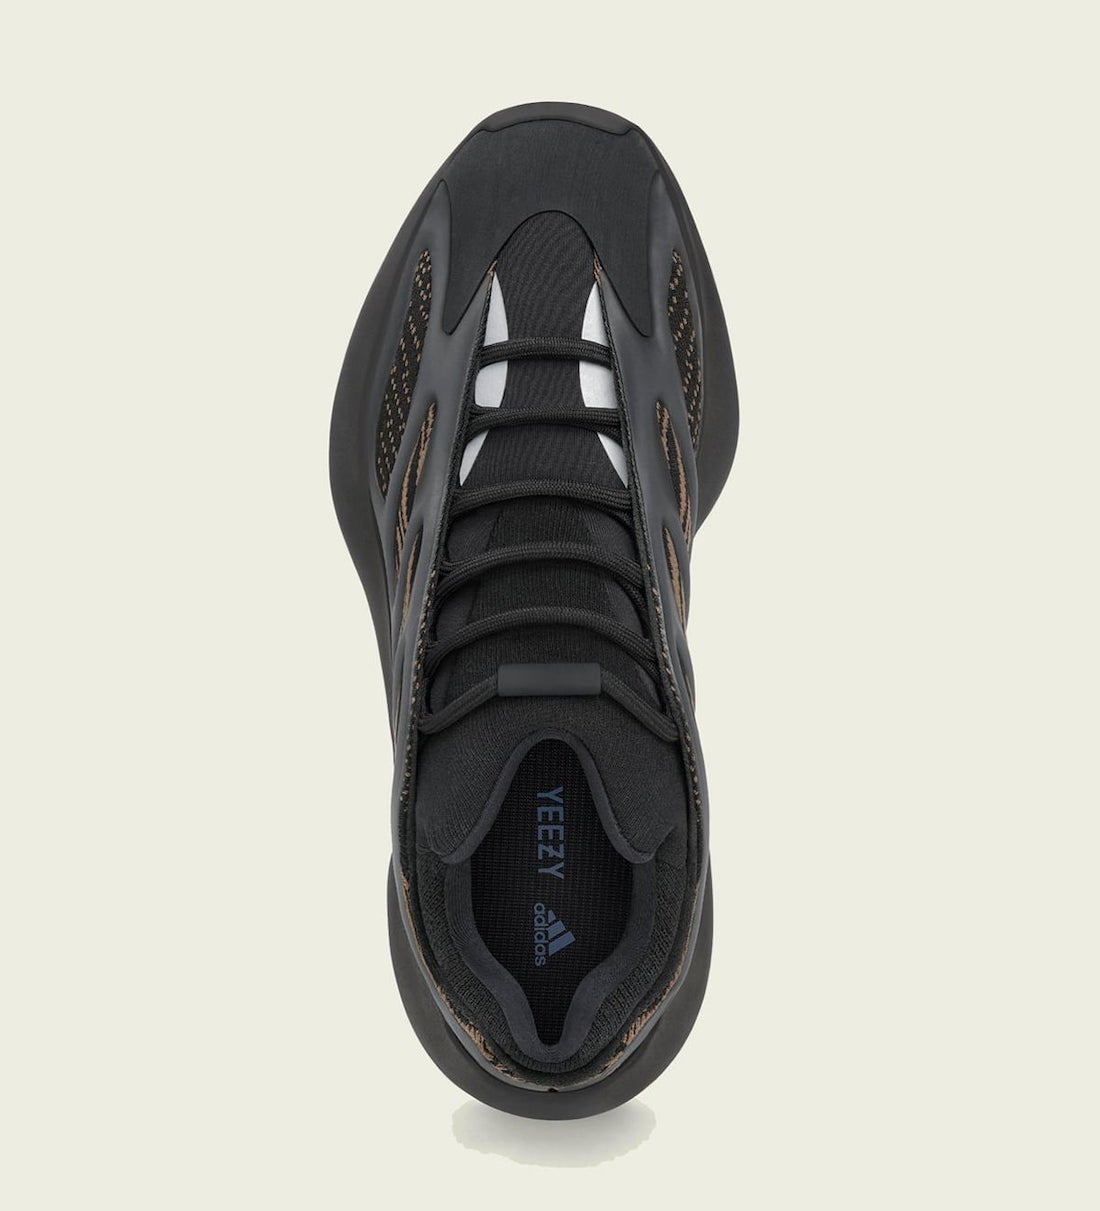 adidas Yeezy 700 V3 Clay Brown GY0189 Release Info Price